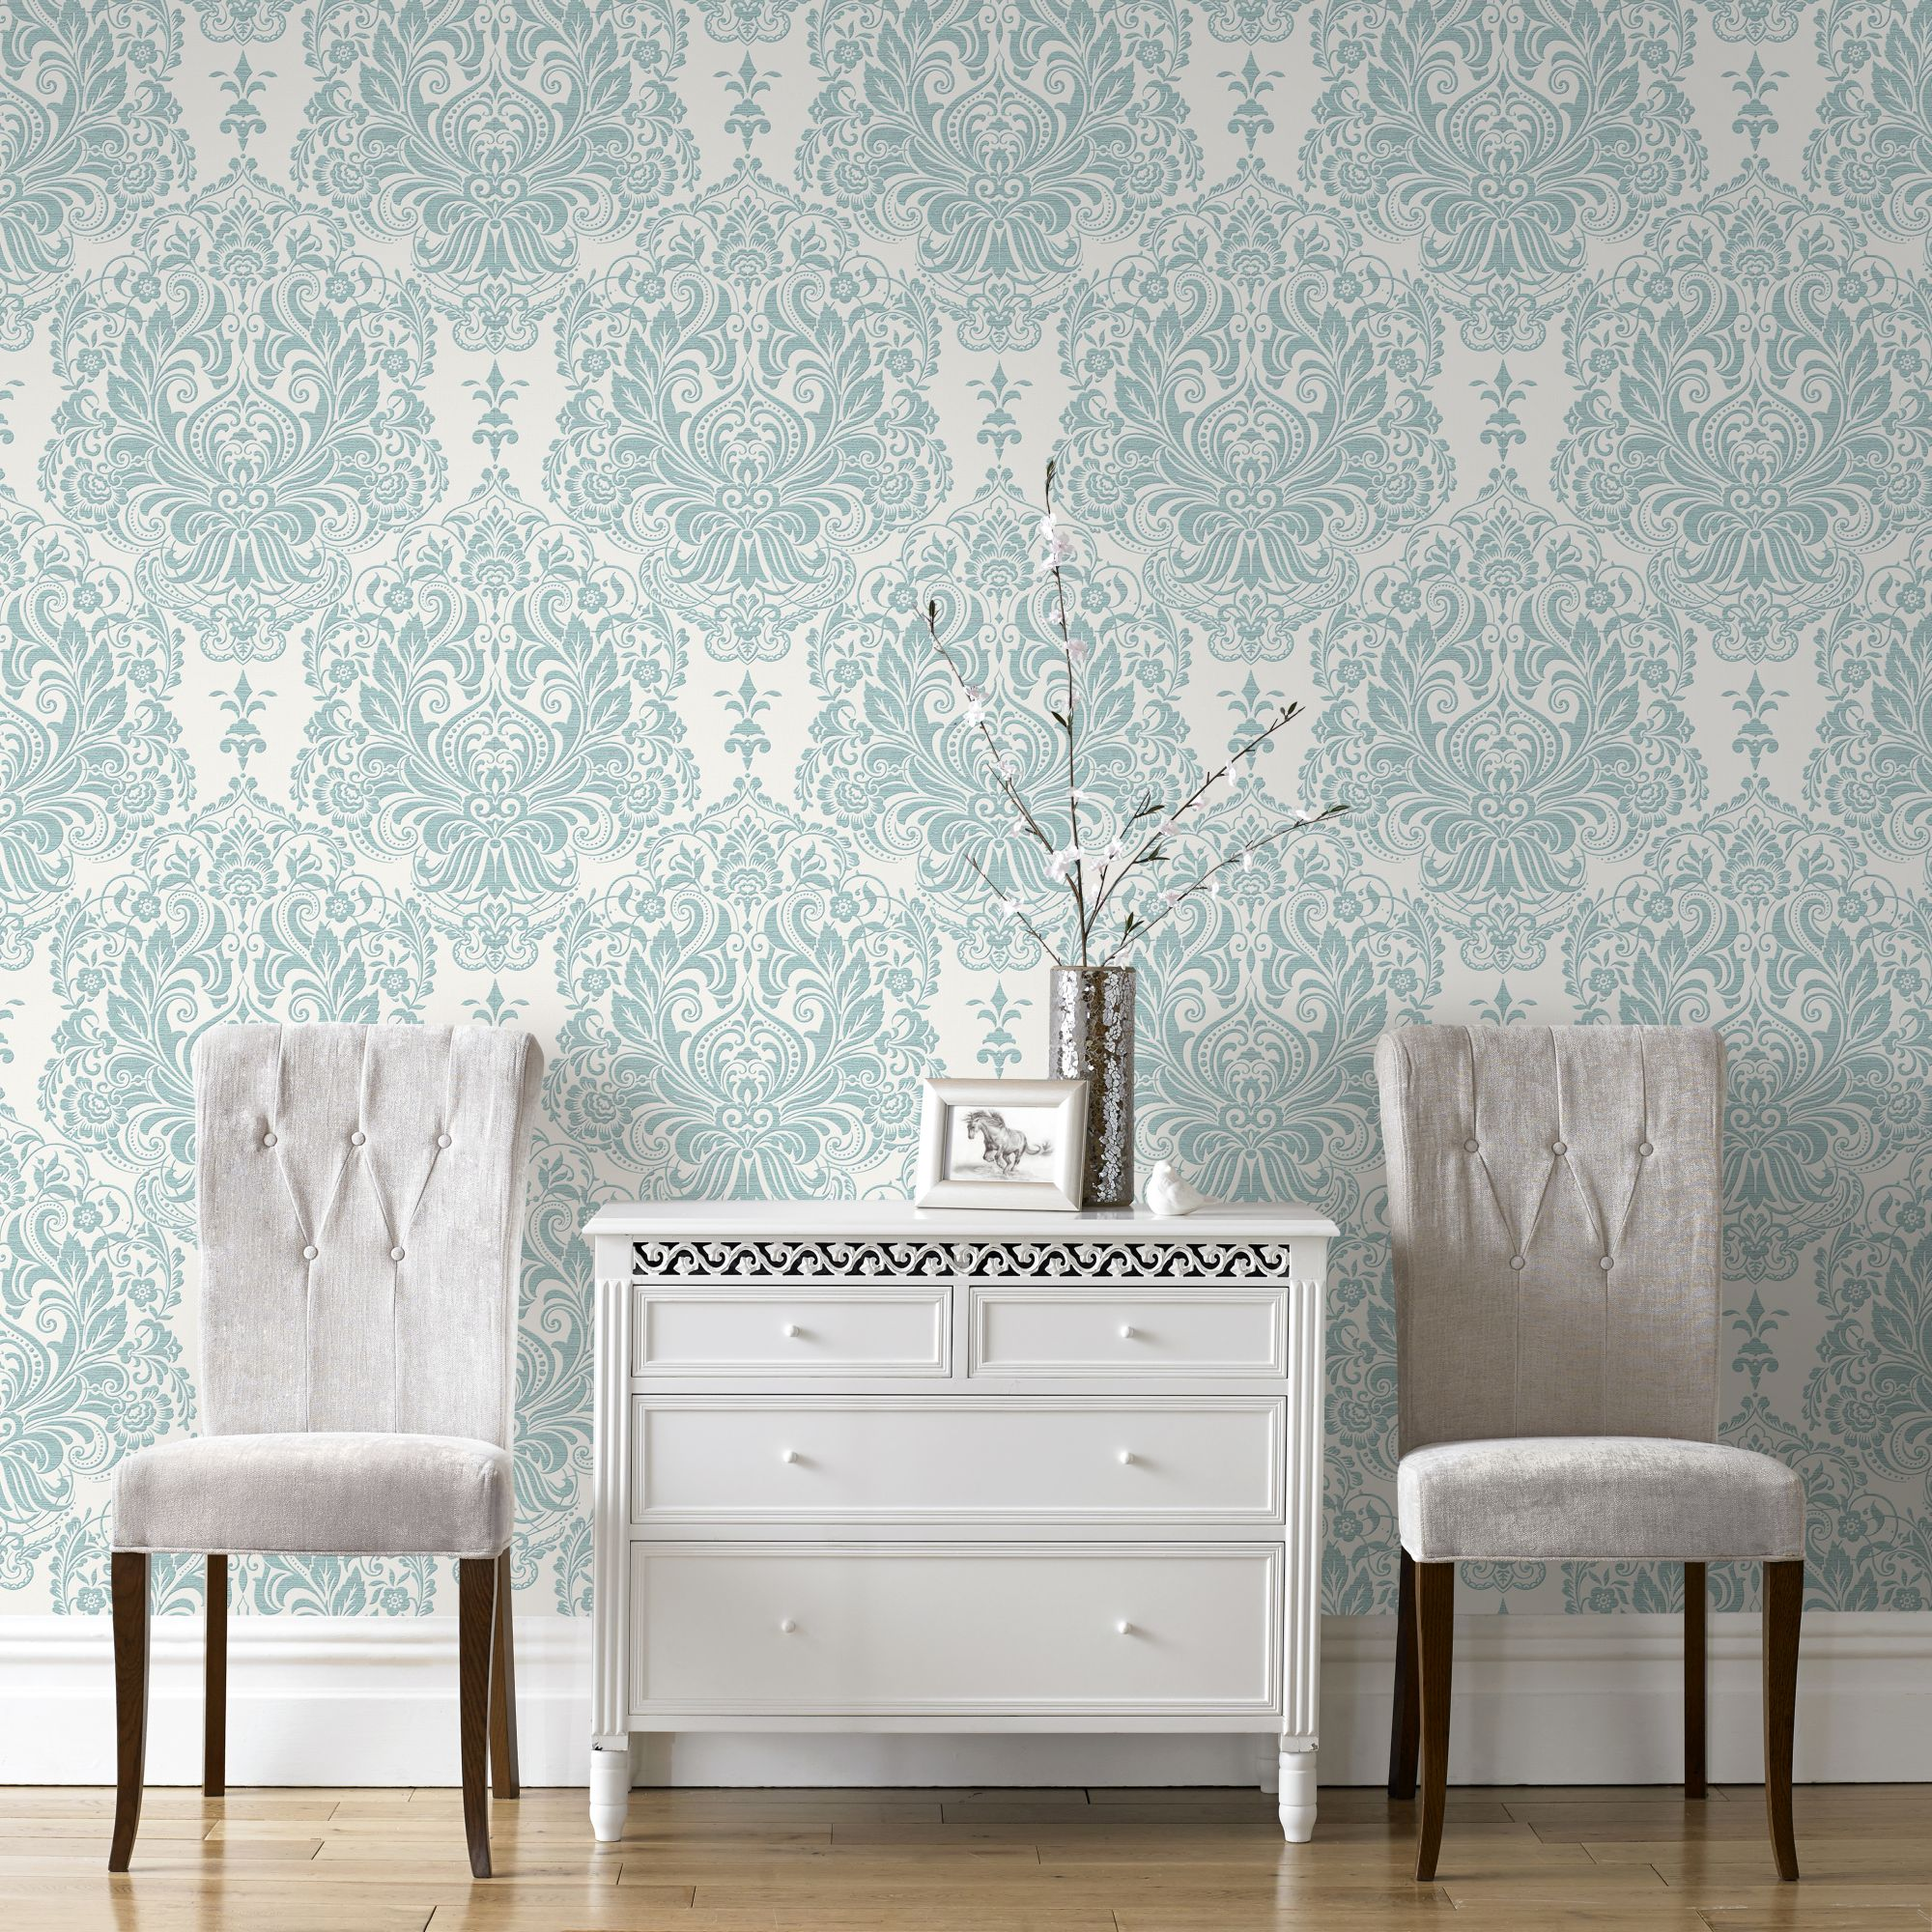 Details about superfresco melody shimmer damask duck egg wallpaper was £16